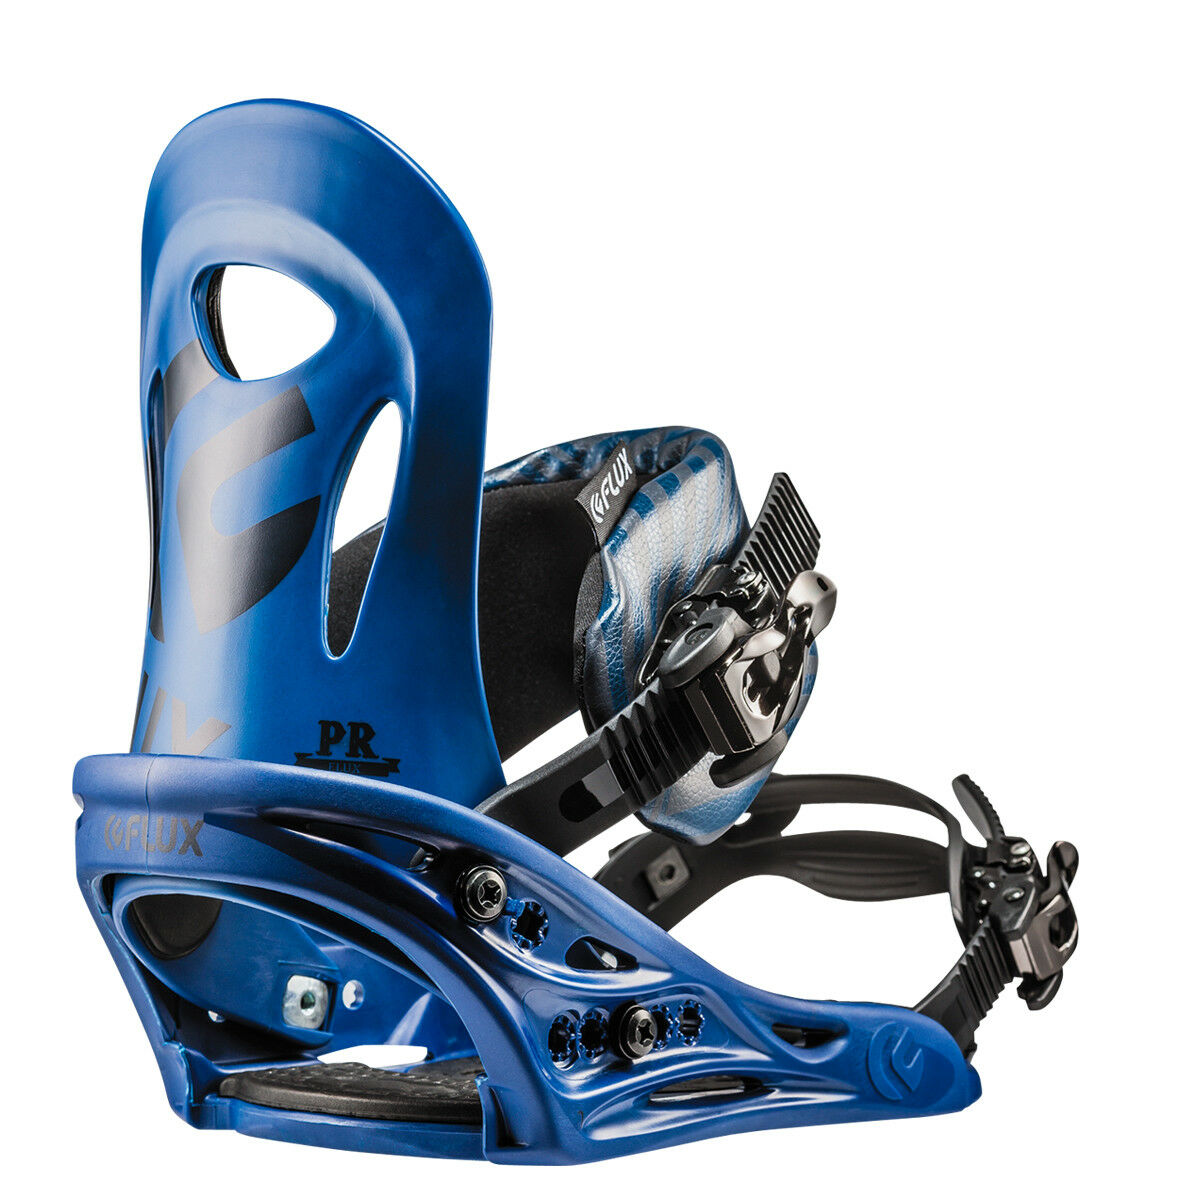 Snowboard Binding Freestyle Mountain Freeride Flux PR 2019 BRAND NEW - 3 FarbeS